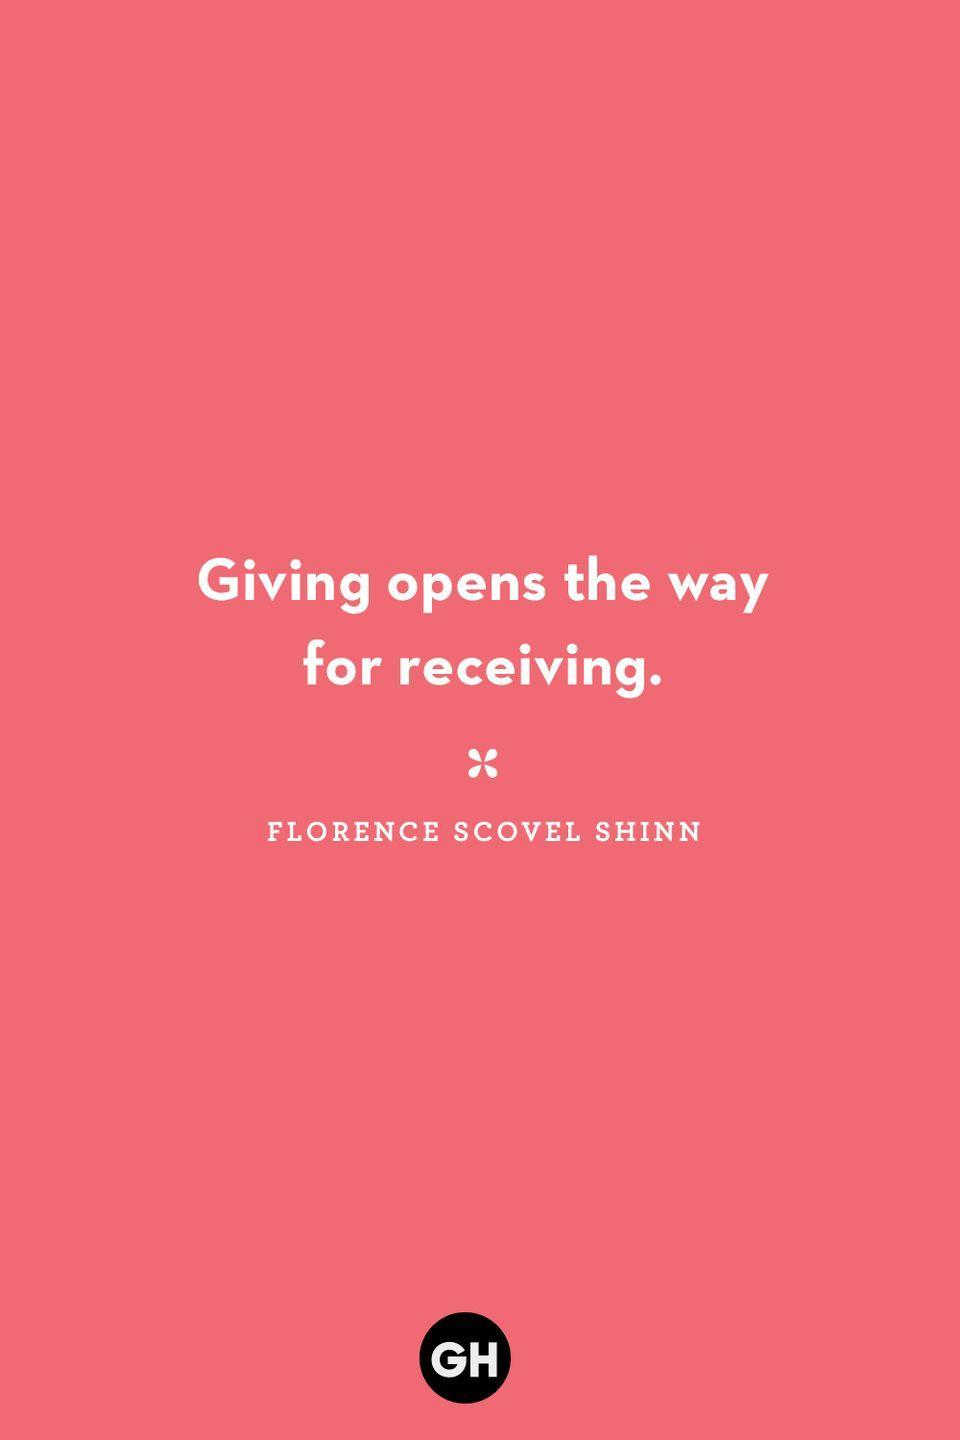 <p>Giving opens the way for receiving.</p>